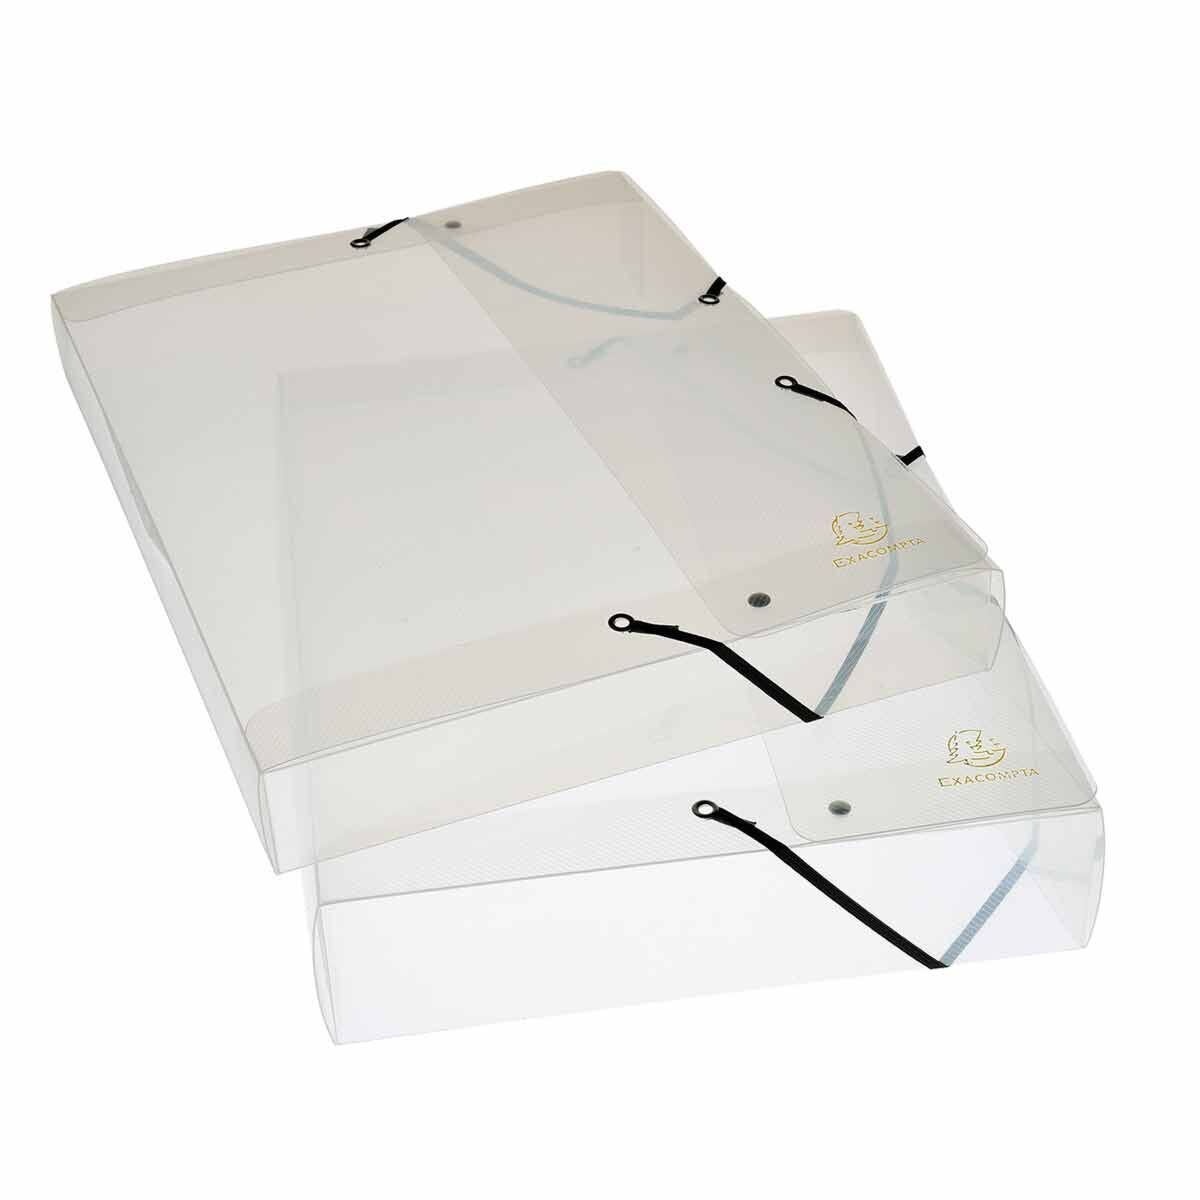 Exacompta Crystal Elasticated Box File A4 25mm Pack of 8